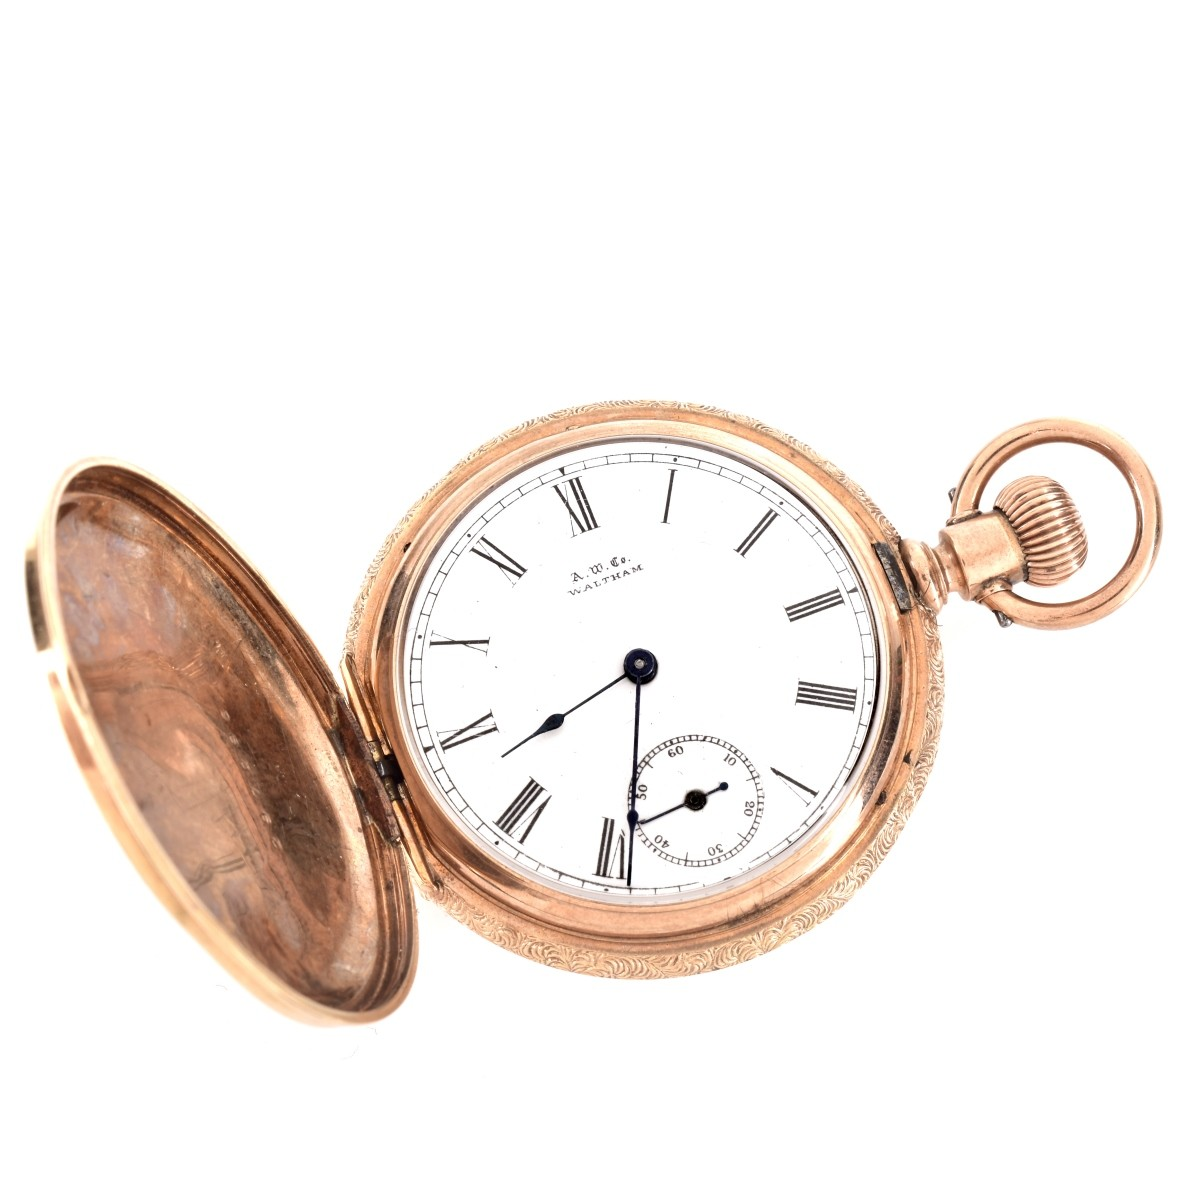 Antique Waltham 14K Gold Pocket Watch